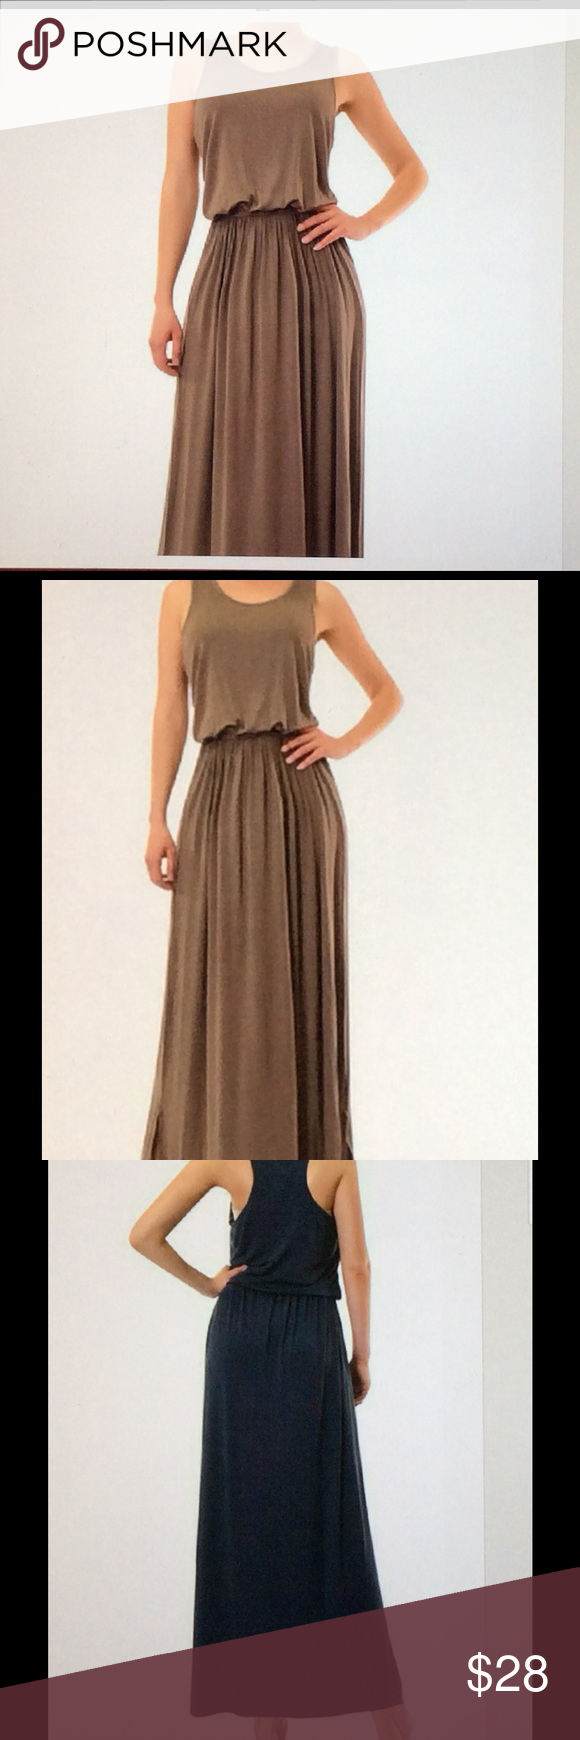 c617fc959a6d Just In- Racer Back Maxi Dress-Coffee Color This Cute Maxi Dress is great  for any occasion Has an elastic waste and is the Racer back style.